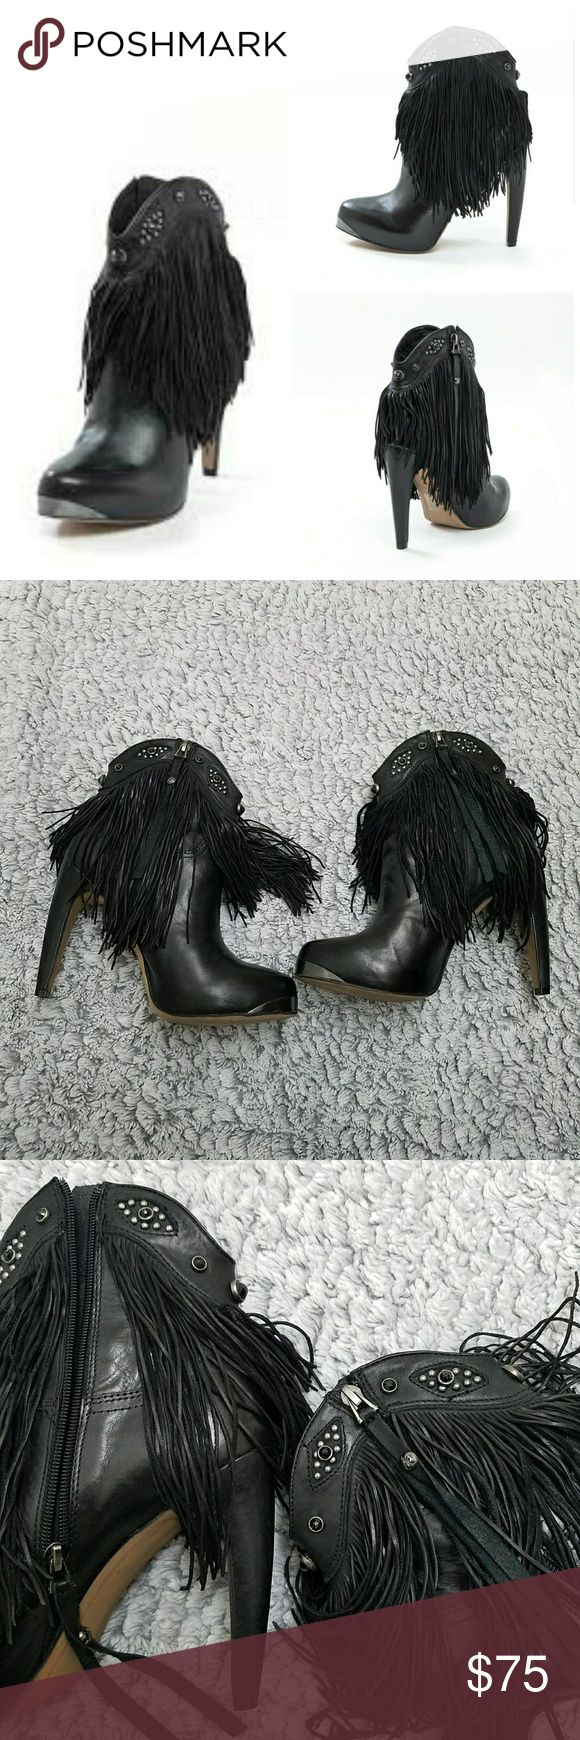 Sam Edelman black fringe Kiana stelito boots In excellent condition worn once inside an event for only a few hours as you can see the bottoms are in almost like new condition no flaws to report. These are unique with detail real leather all gems accounted for. These are so comfortable for stelitos. Haves a silver front.   Please note I do no longer have original box CHECK OUT MY OTHER LISTINGS ON MORE AMAZING DEALS Sam Edelman Shoes Ankle Boots & Booties